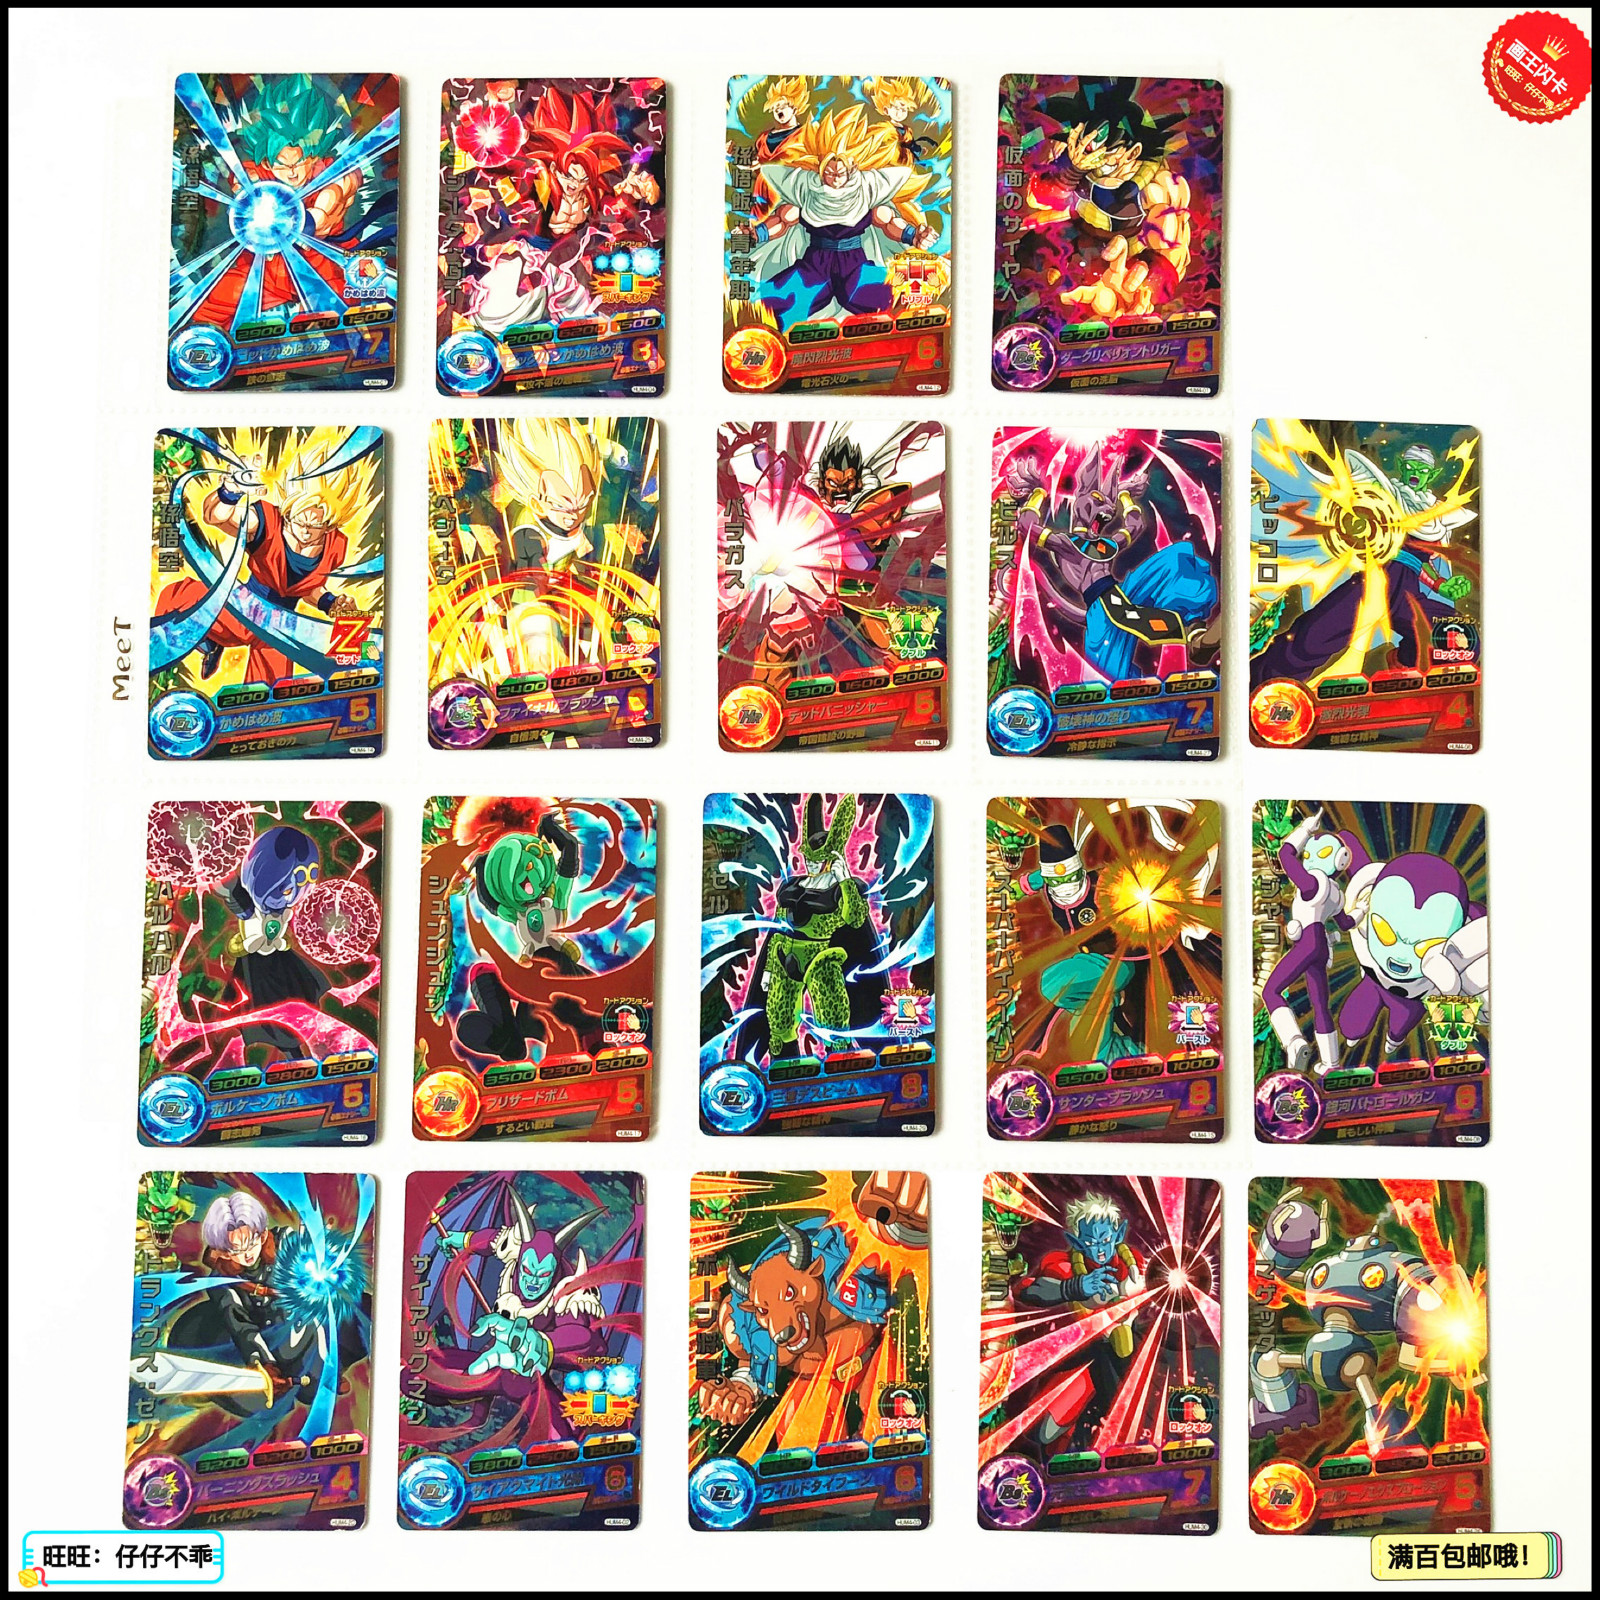 Japan Original Dragon Ball Hero Card HUM4 Goku Toys Hobbies Collectibles Game Collection Anime Cards